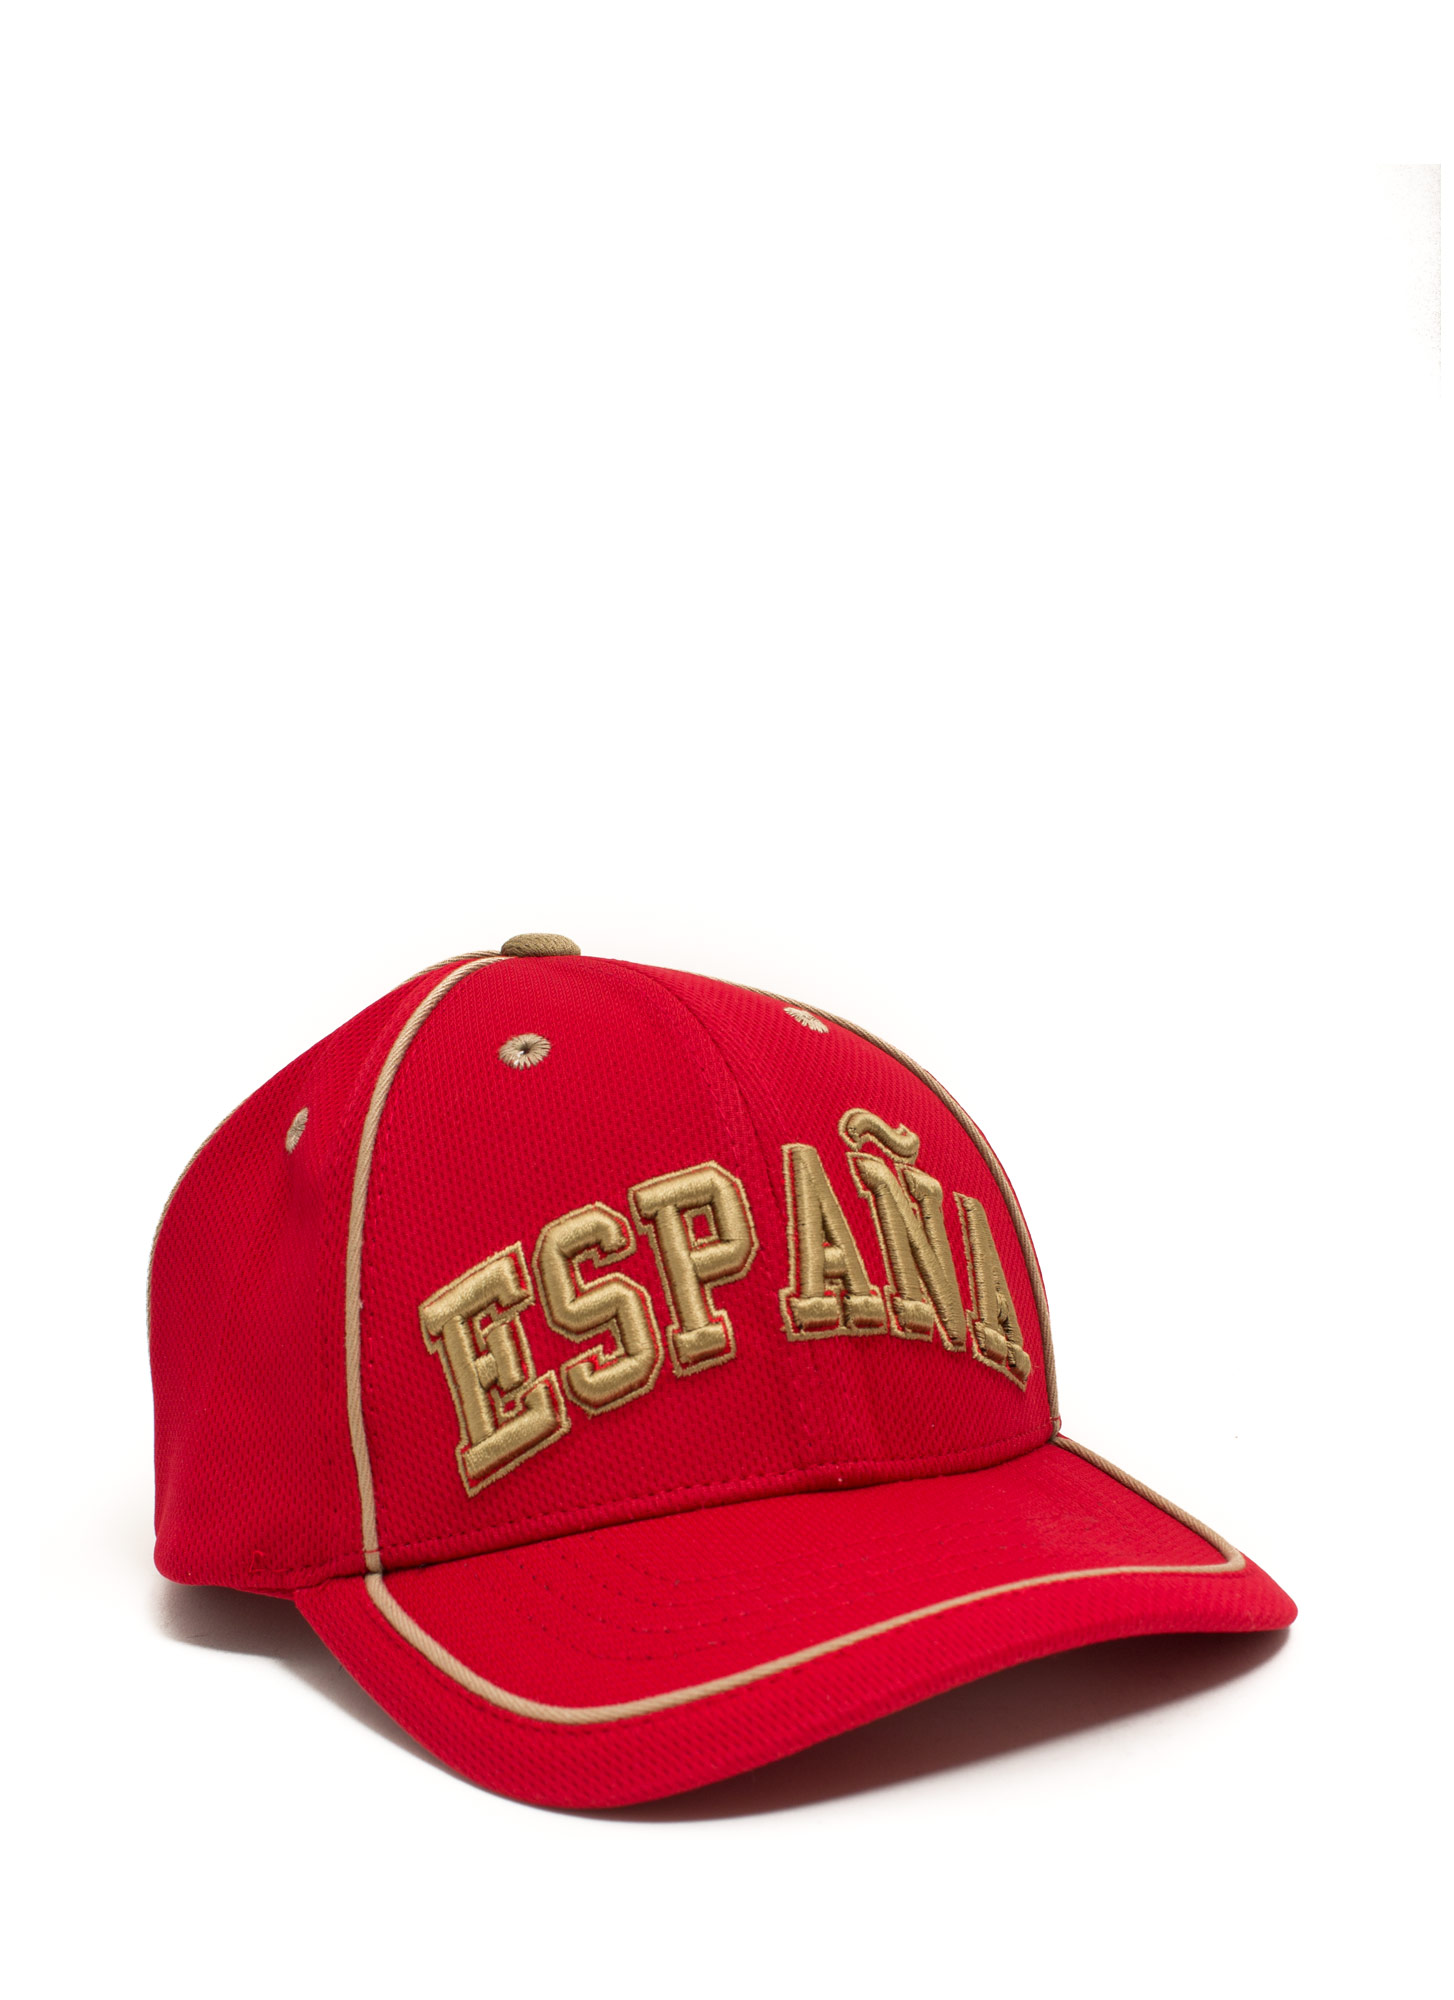 International Country Snapback Hat ESPANA